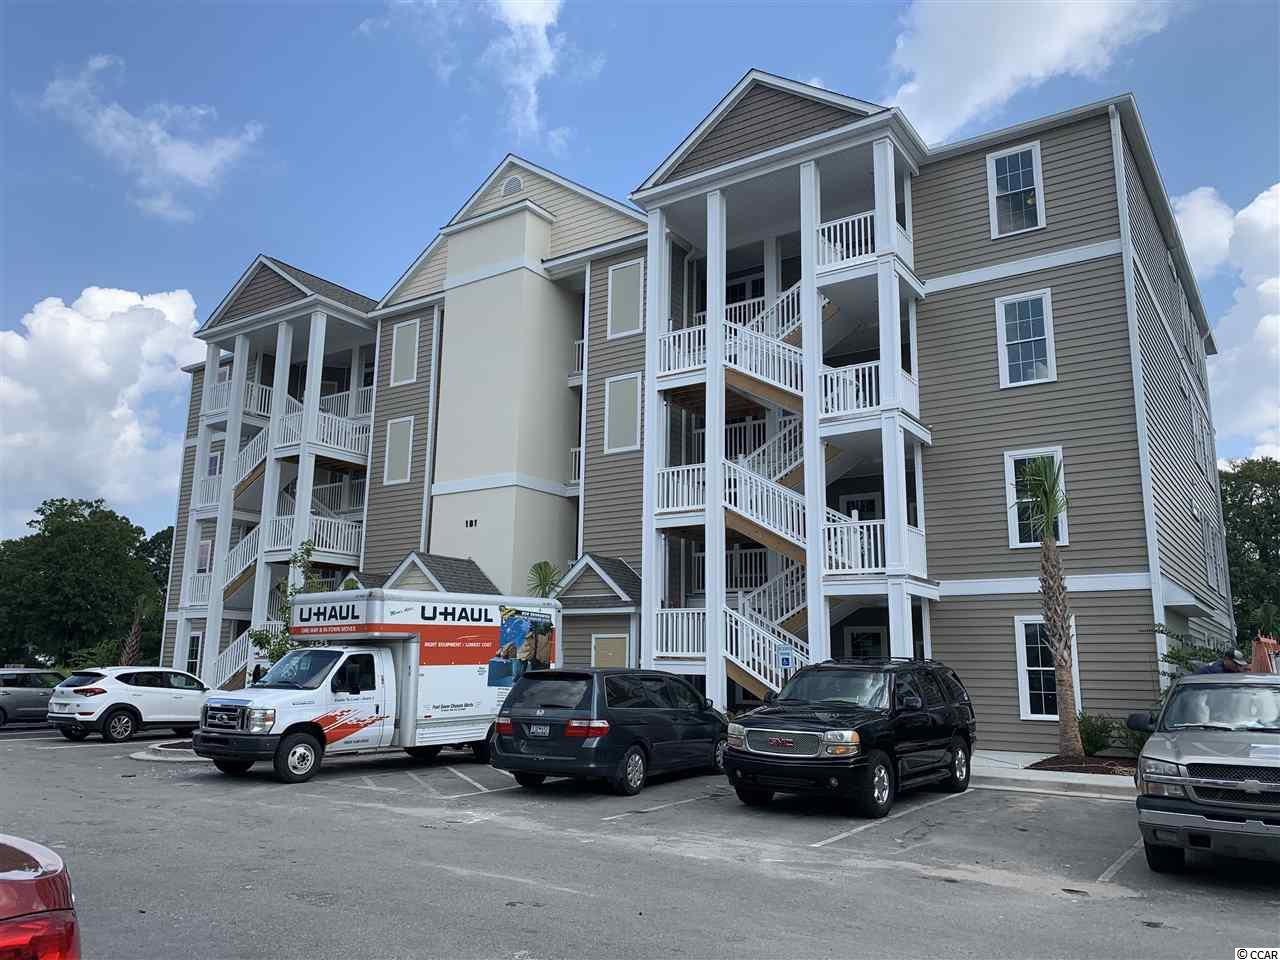 Located in one of the most successful condo developments in the Myrtle Beach area, this first floor unit is a 2 bedroom 2 bathroom beautiful condo in the very popular Queens Harbour! Building has an oversized ELEVATOR to all floors, outside storage, split bedroom floor plans with entry to the Master Suite from the Family Room, 9' smooth ceilings and a screen porch. The location is superb with shopping, dining and recreation steps away. The amenity package includes a resort style swimming pool with club house and conveniently located picnic areas with barbecues.